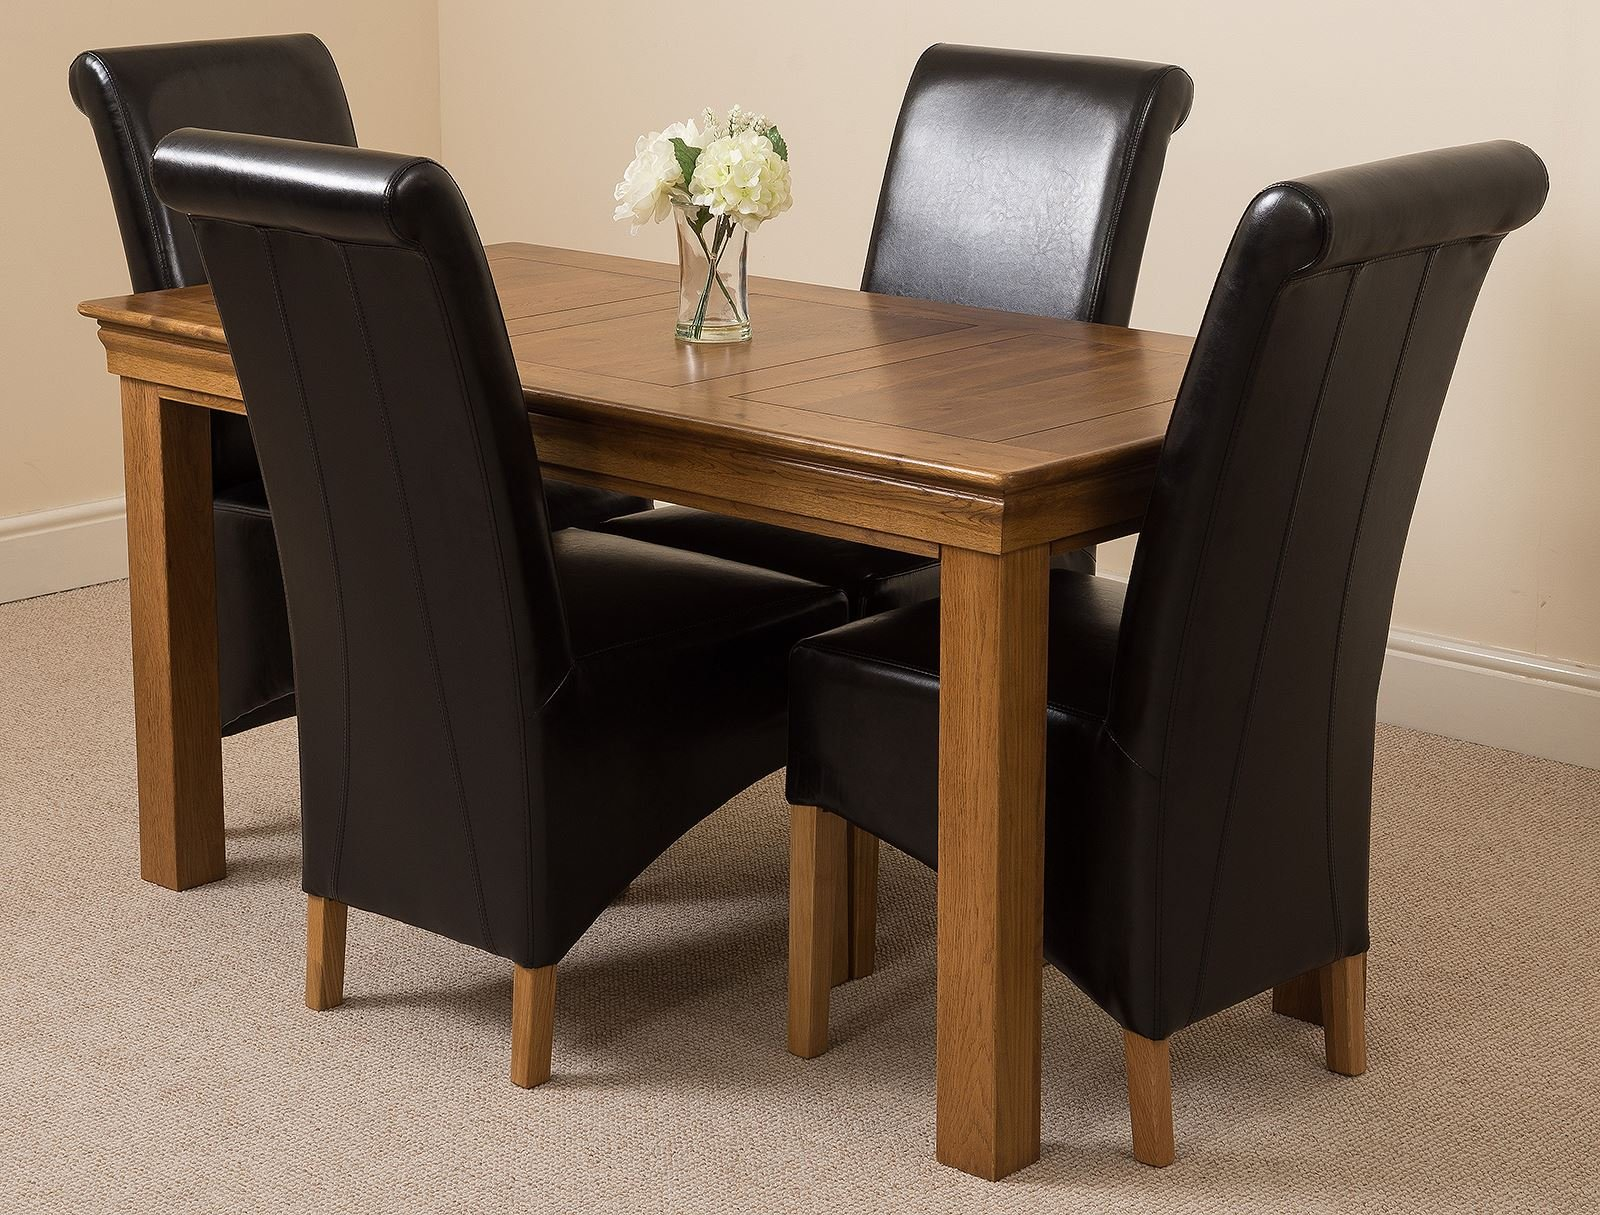 81uCmX2jJTL - French Rustic Solid Oak 150 cm Dining Table with 4 or 6 Montana Dining Chairs